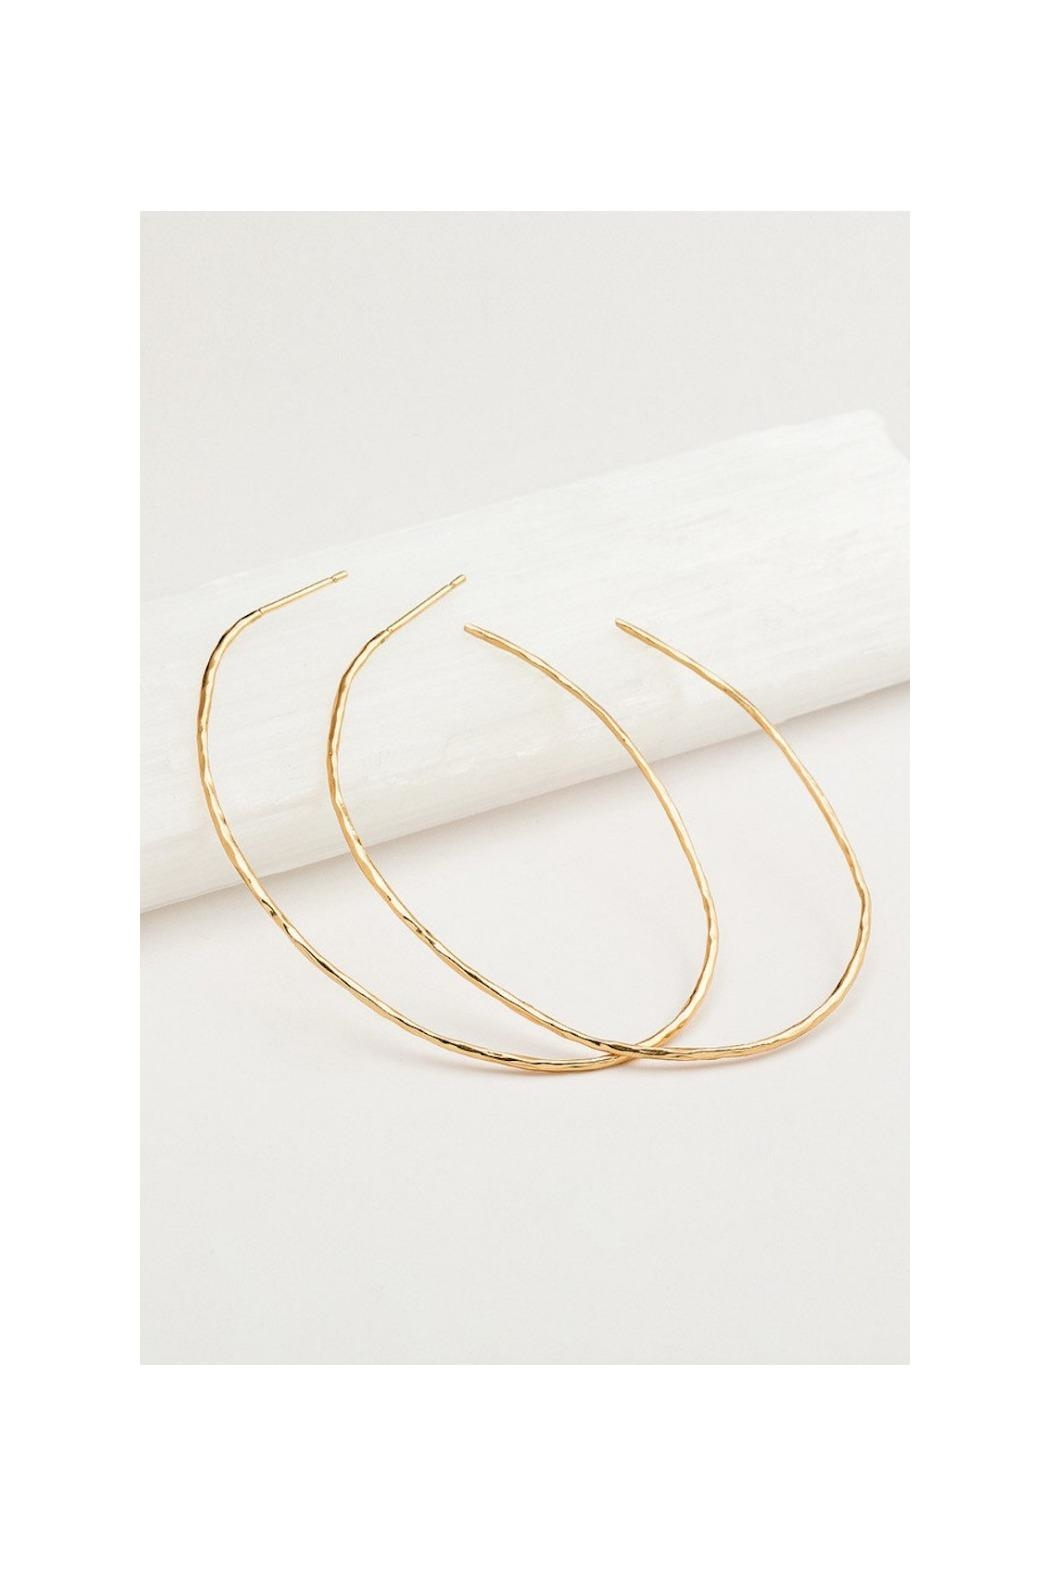 Gemma Collection Harbour Oval Hoops - Front Full Image